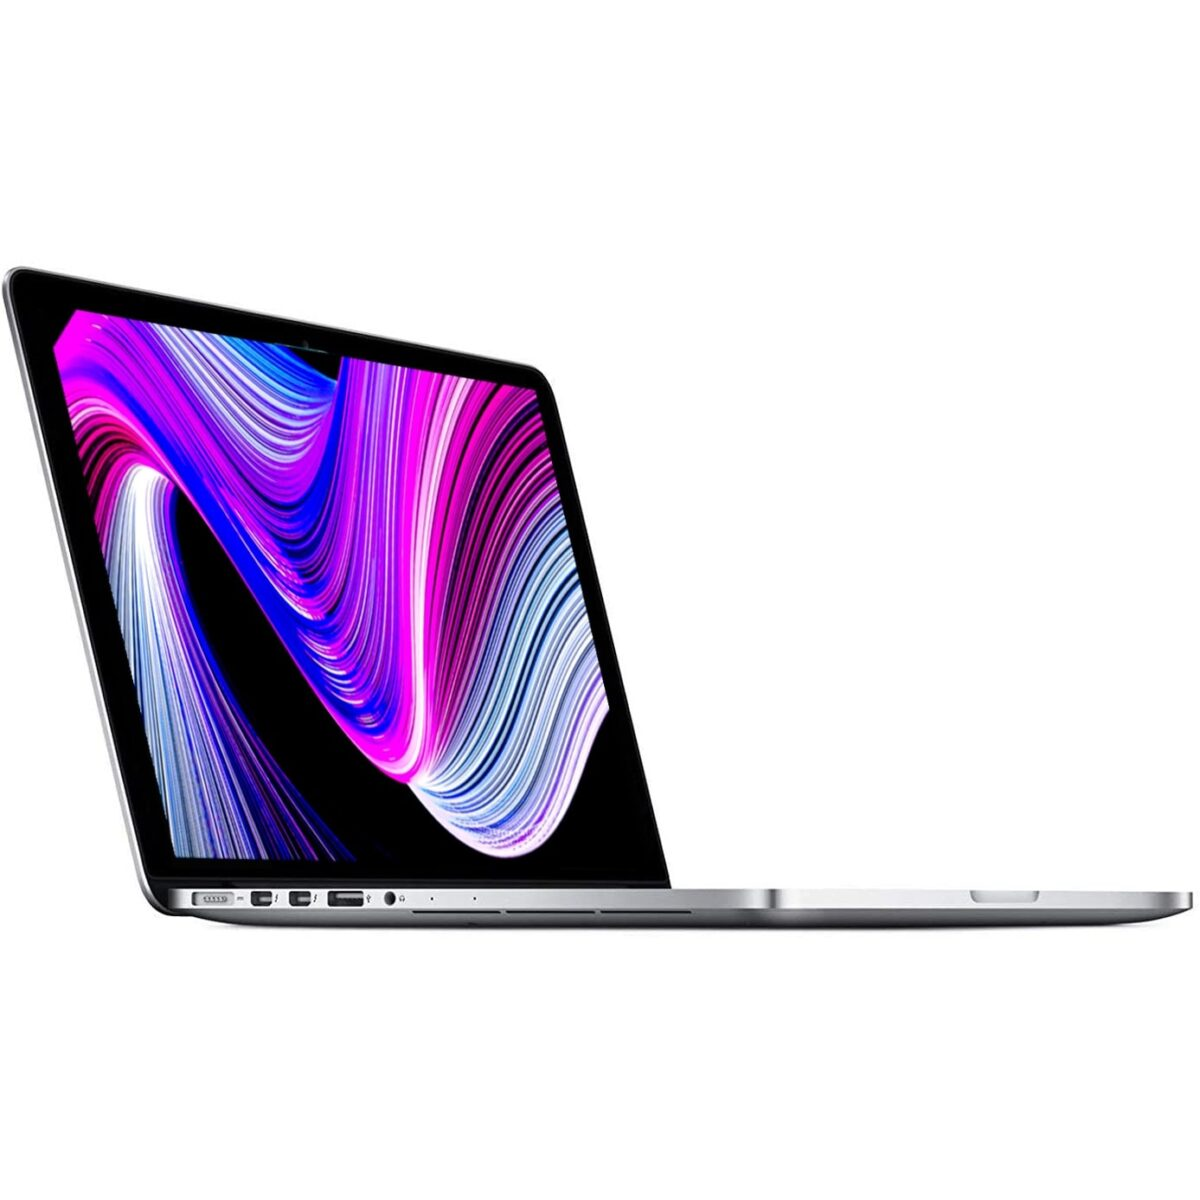 "Retina Apple Macbook Pro 13.3"" 512GB SSD 16GB RAM Core i7 3.10GHZ Powerful A1502 Mac Laptop OS Catalina"